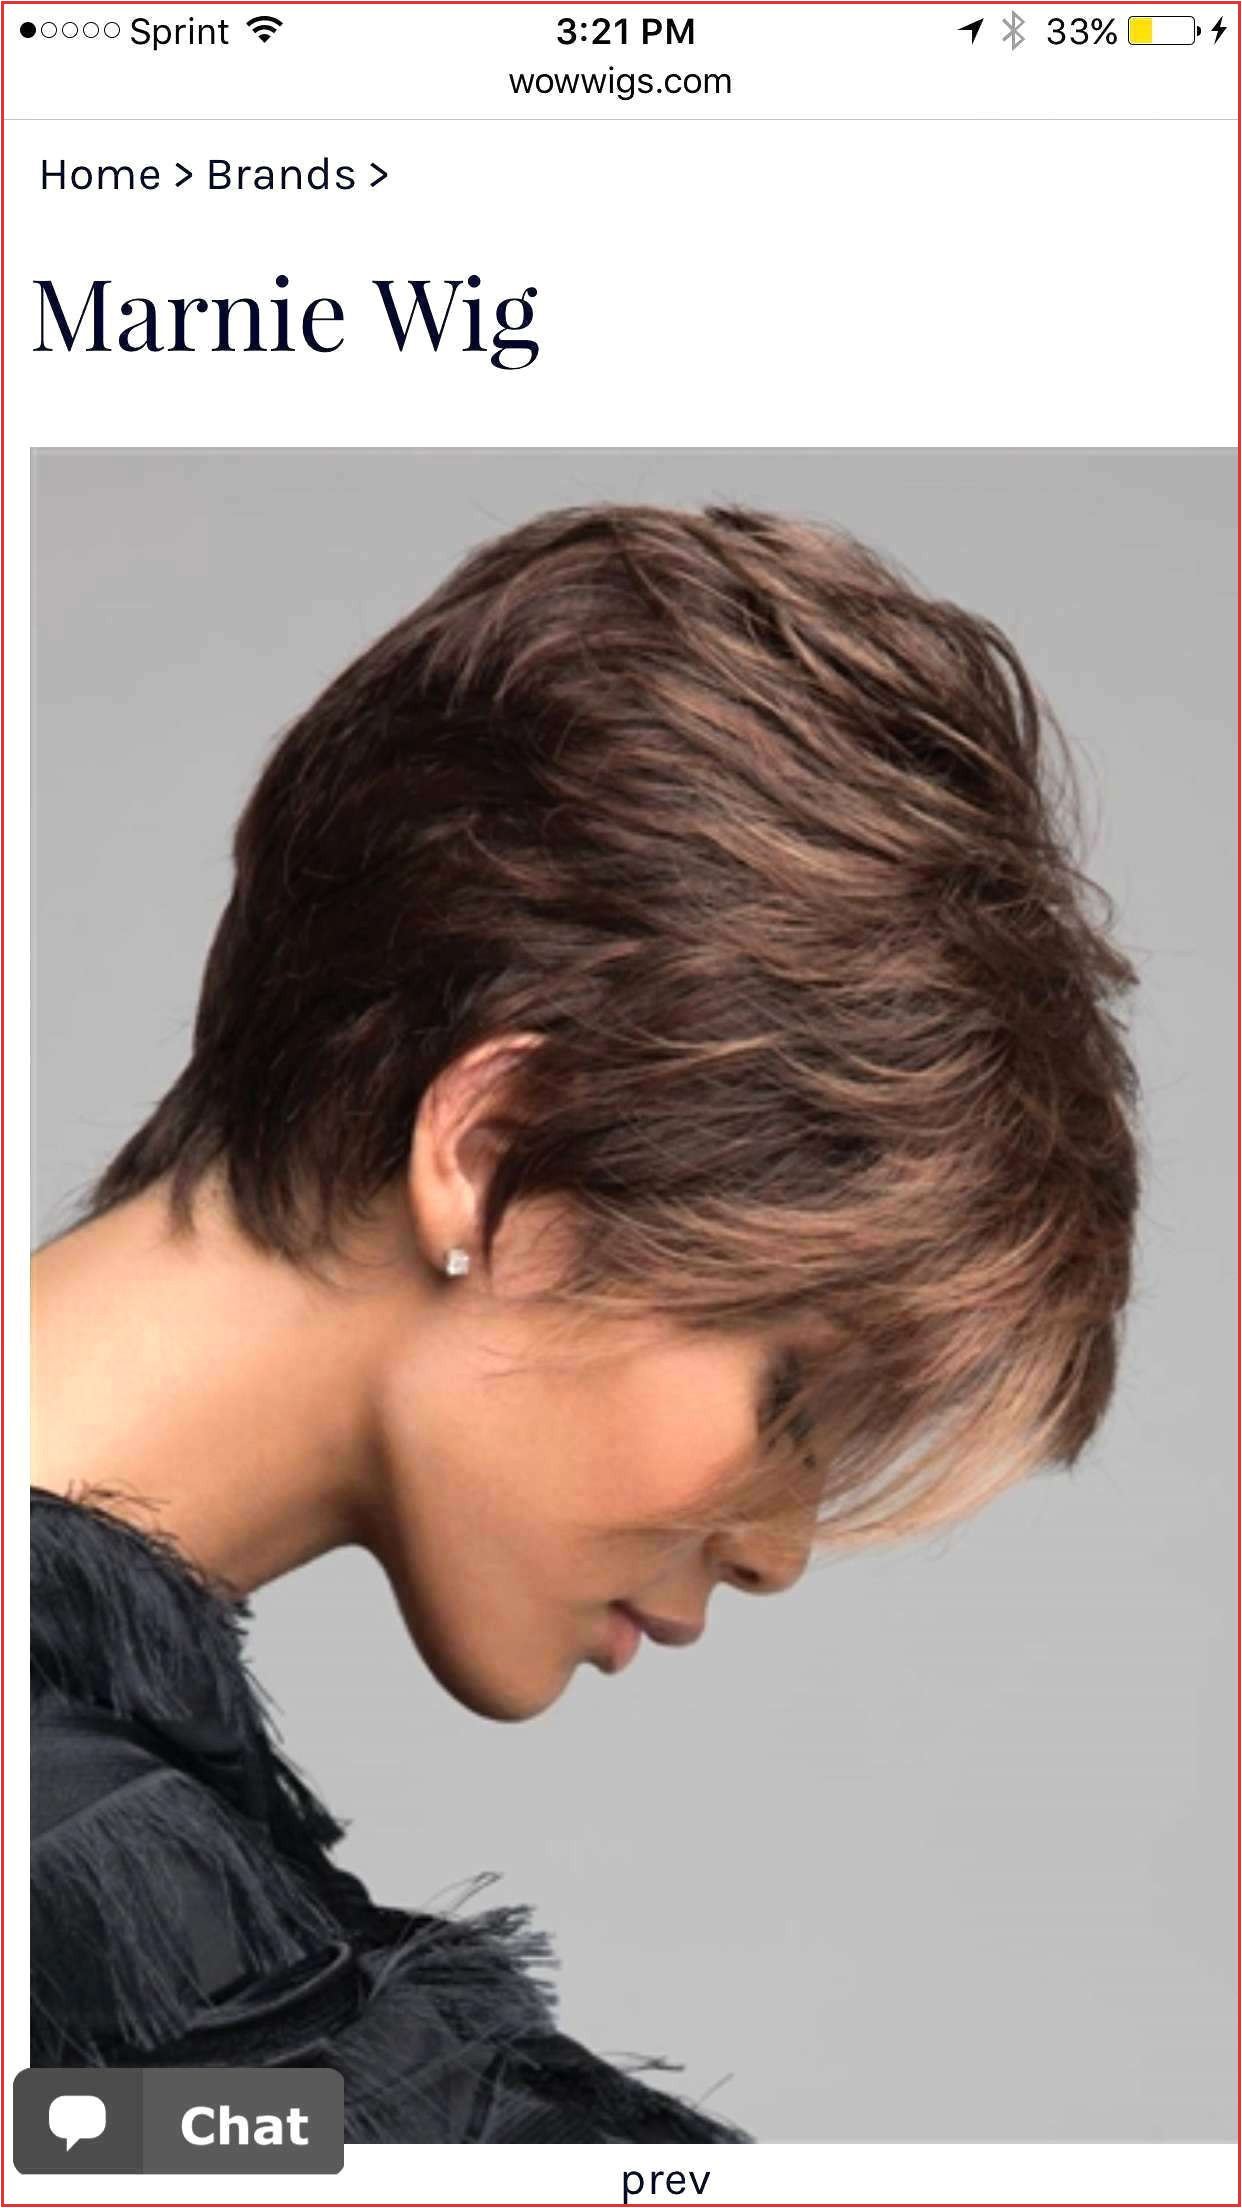 Drakes Haircuts Best Hair Style for Men Foxy Drake Haircuts Best tomboy Haircut 0d